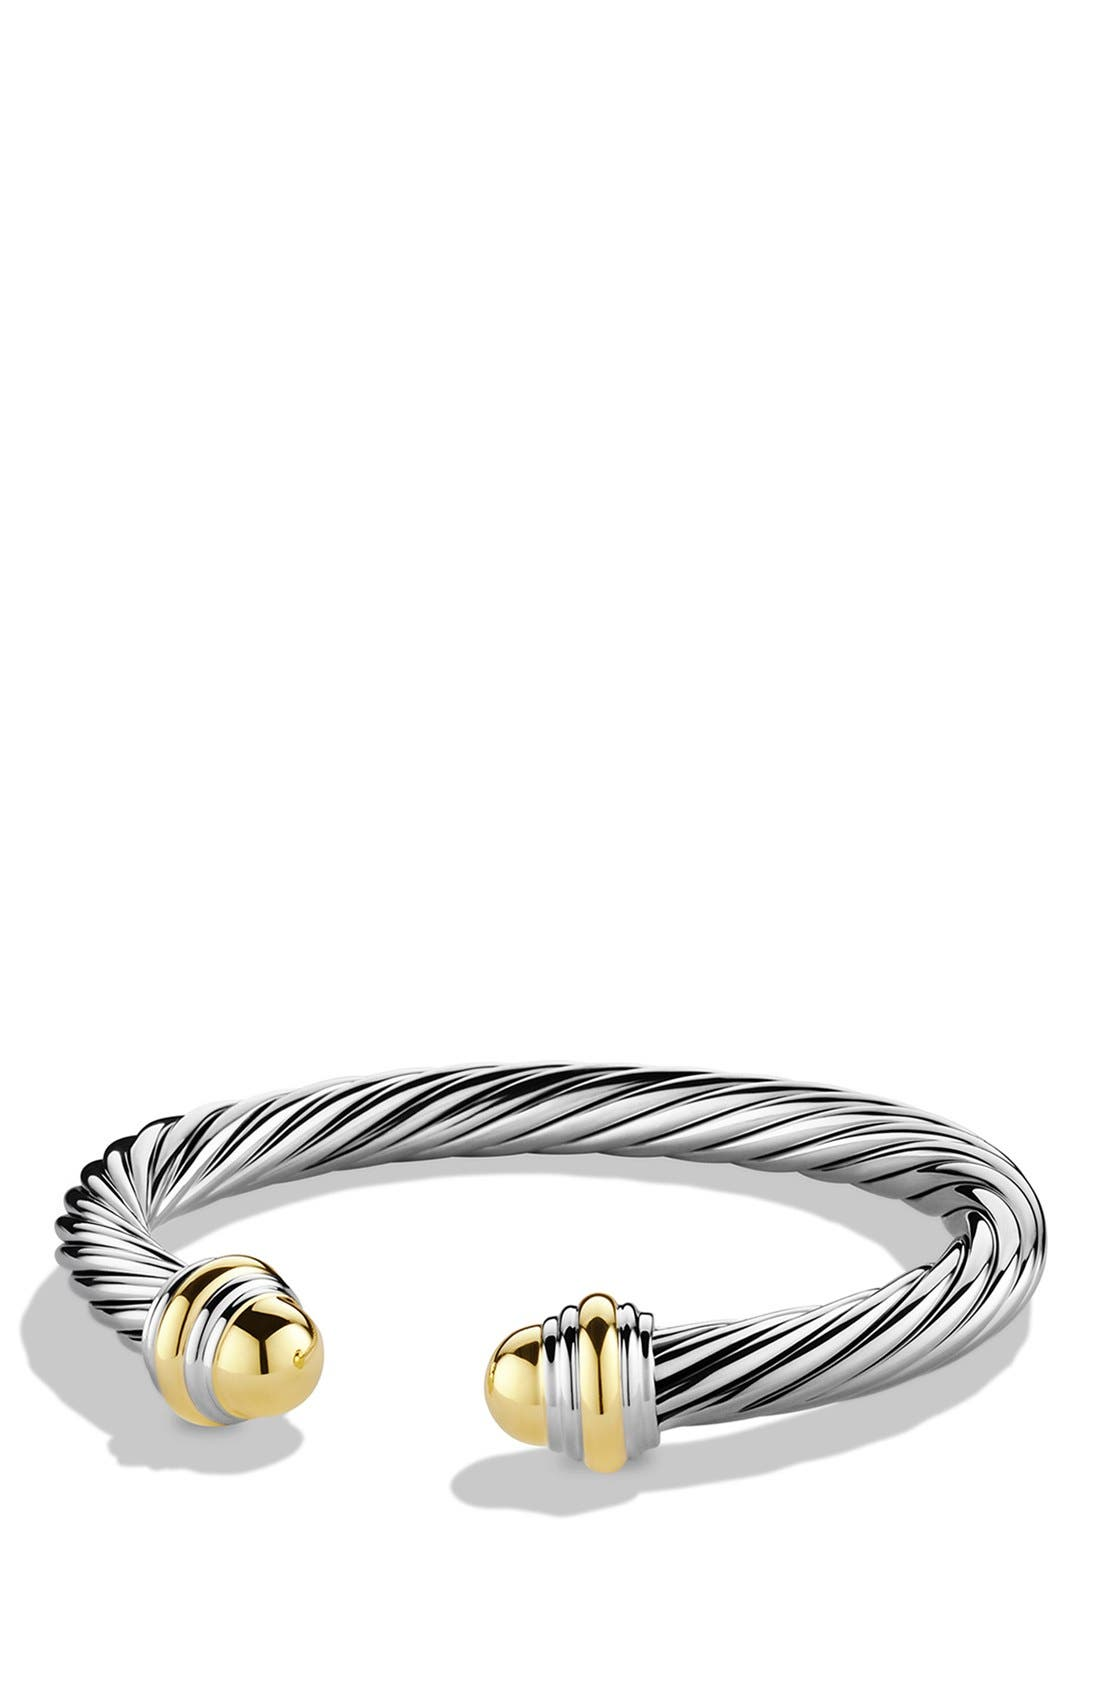 Main Image - David Yurman 'Cable Classics' Bracelet with Gold Domes